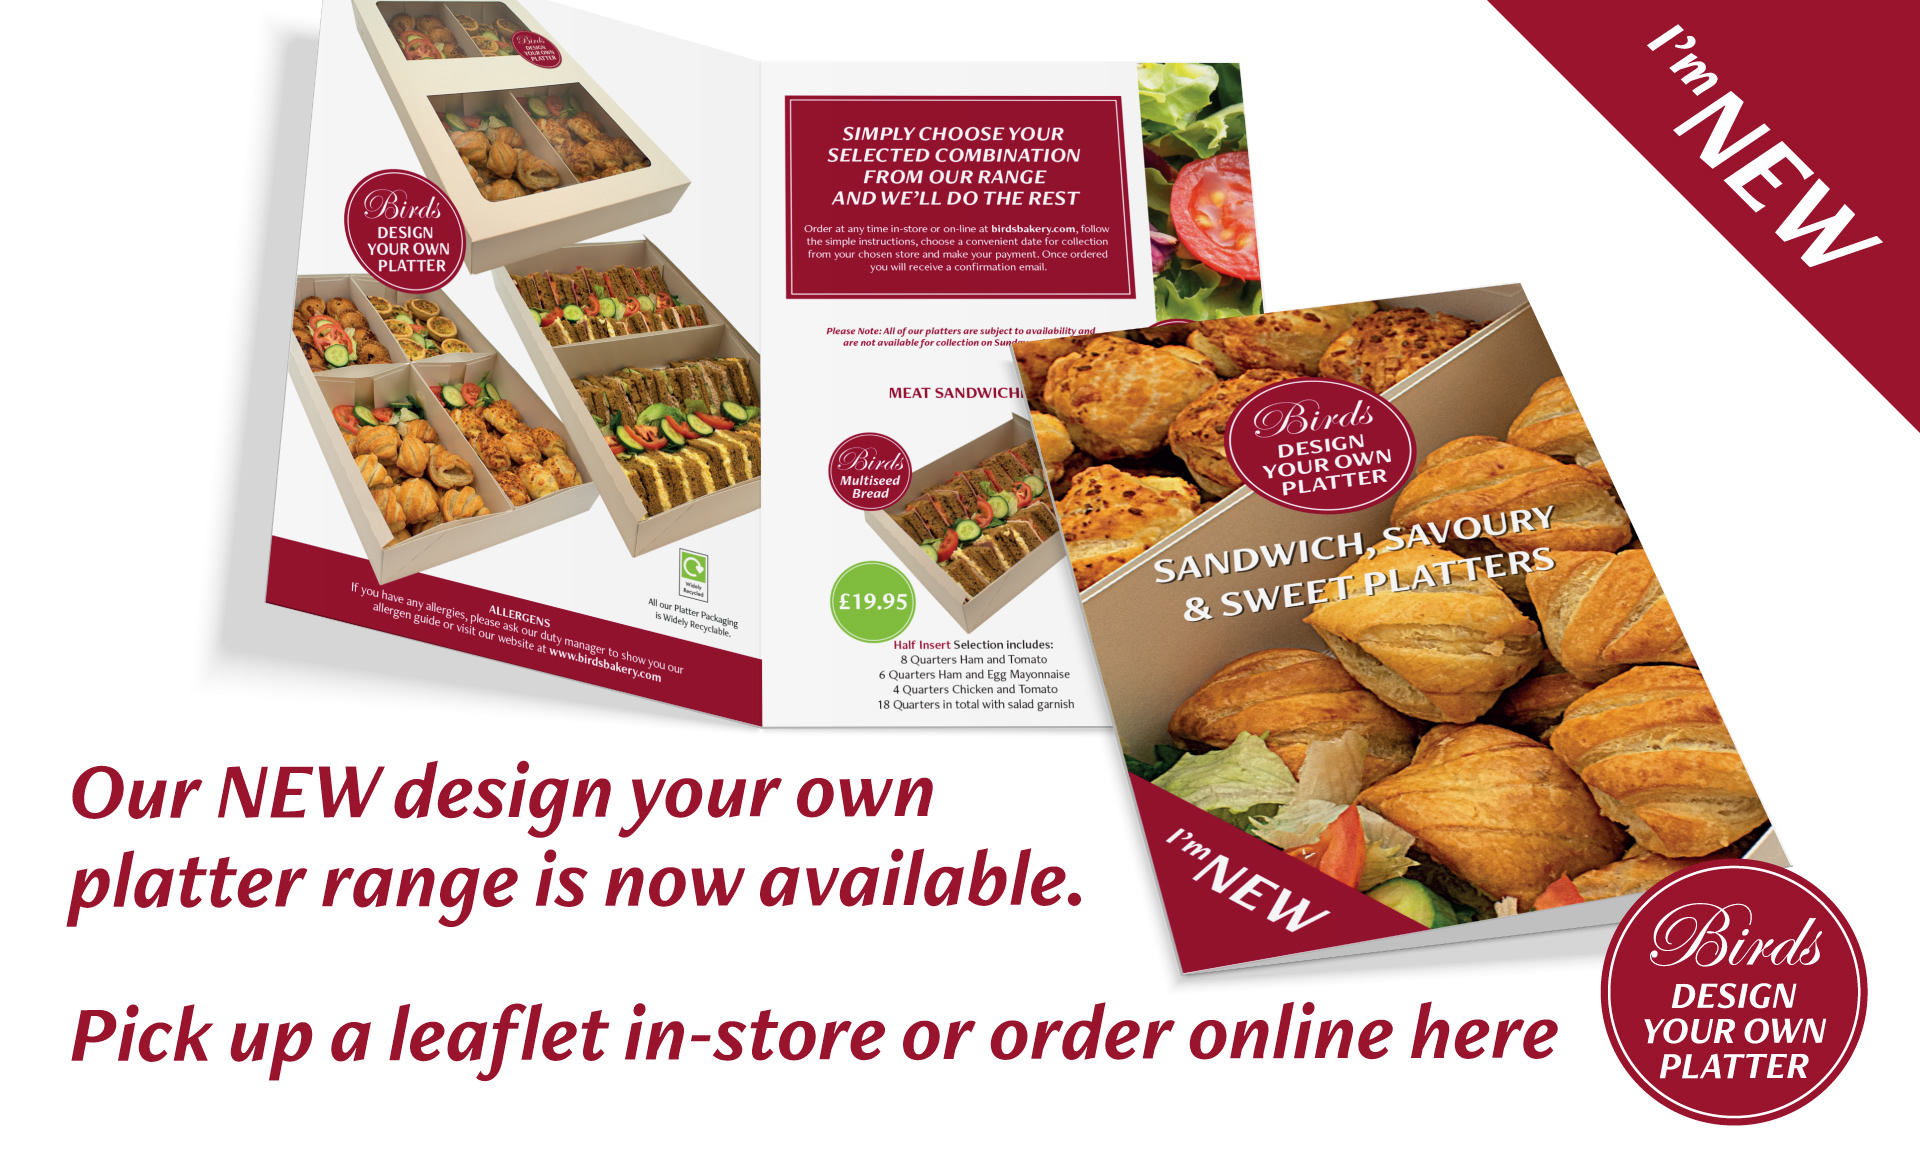 Our new design your own platter range is now available. Pick up a leaflet in store or order online here